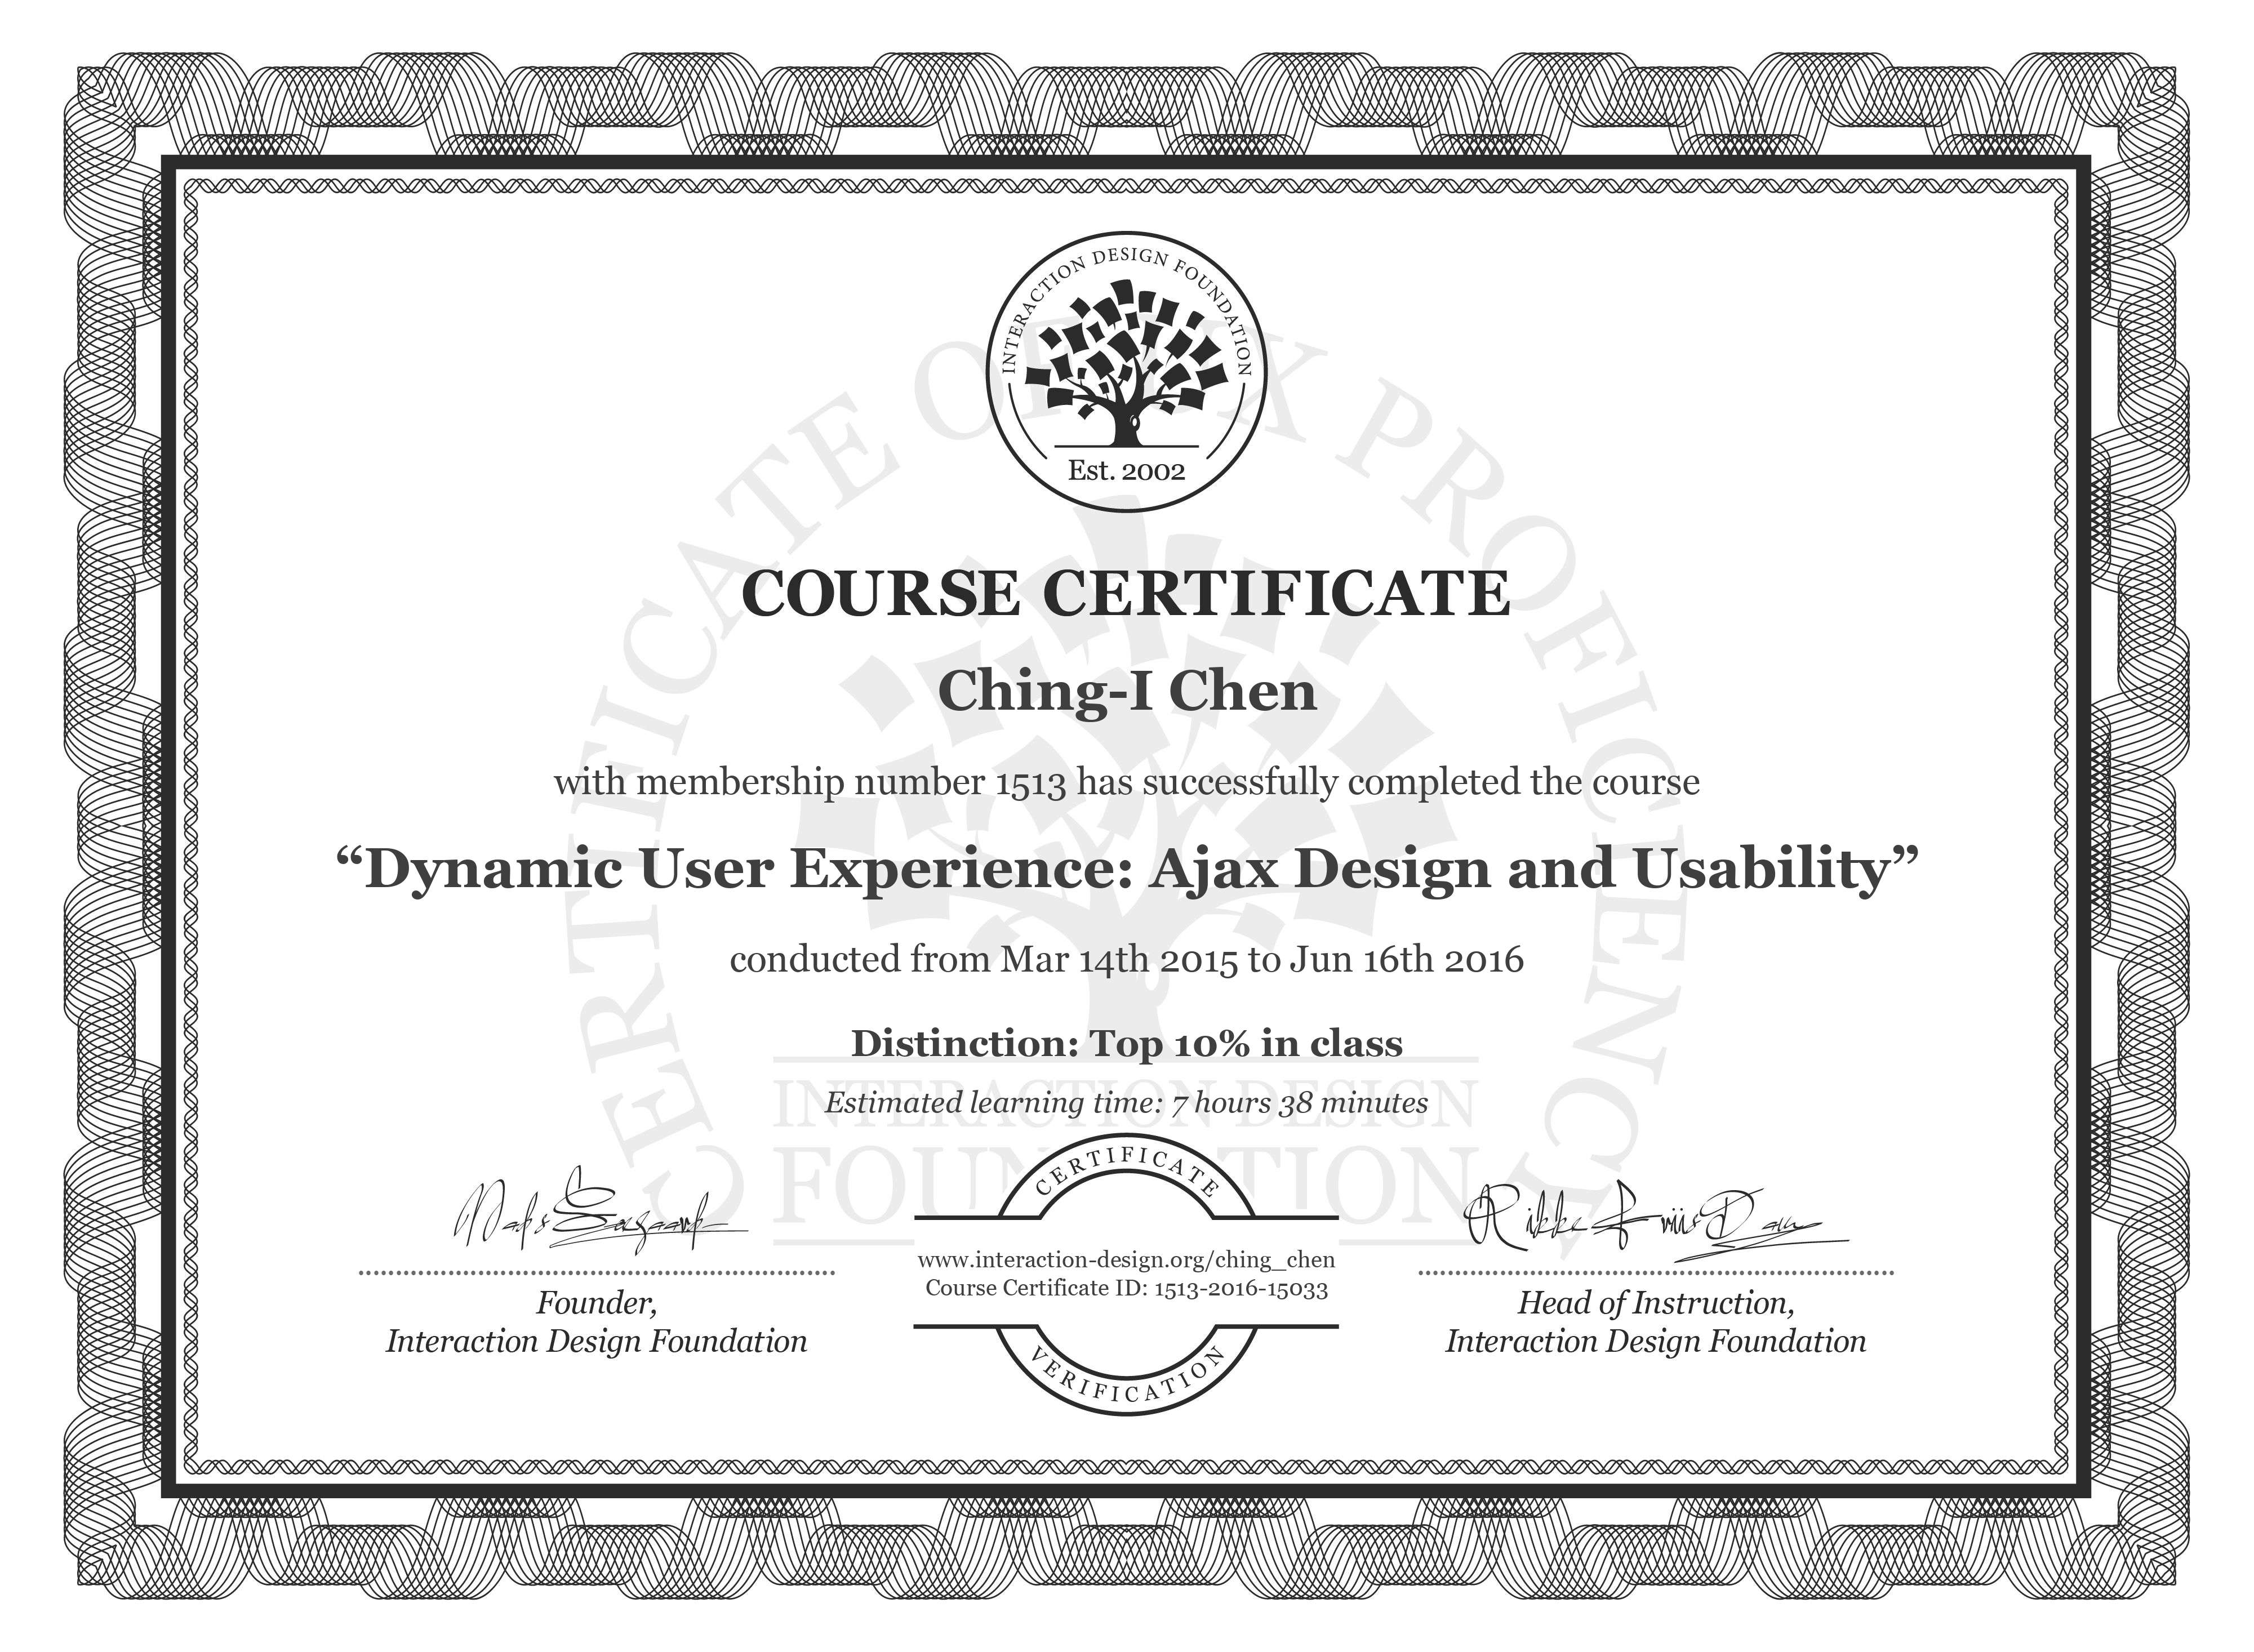 Ching Chen's Course Certificate: Dynamic User Experience: Ajax Design and Usability